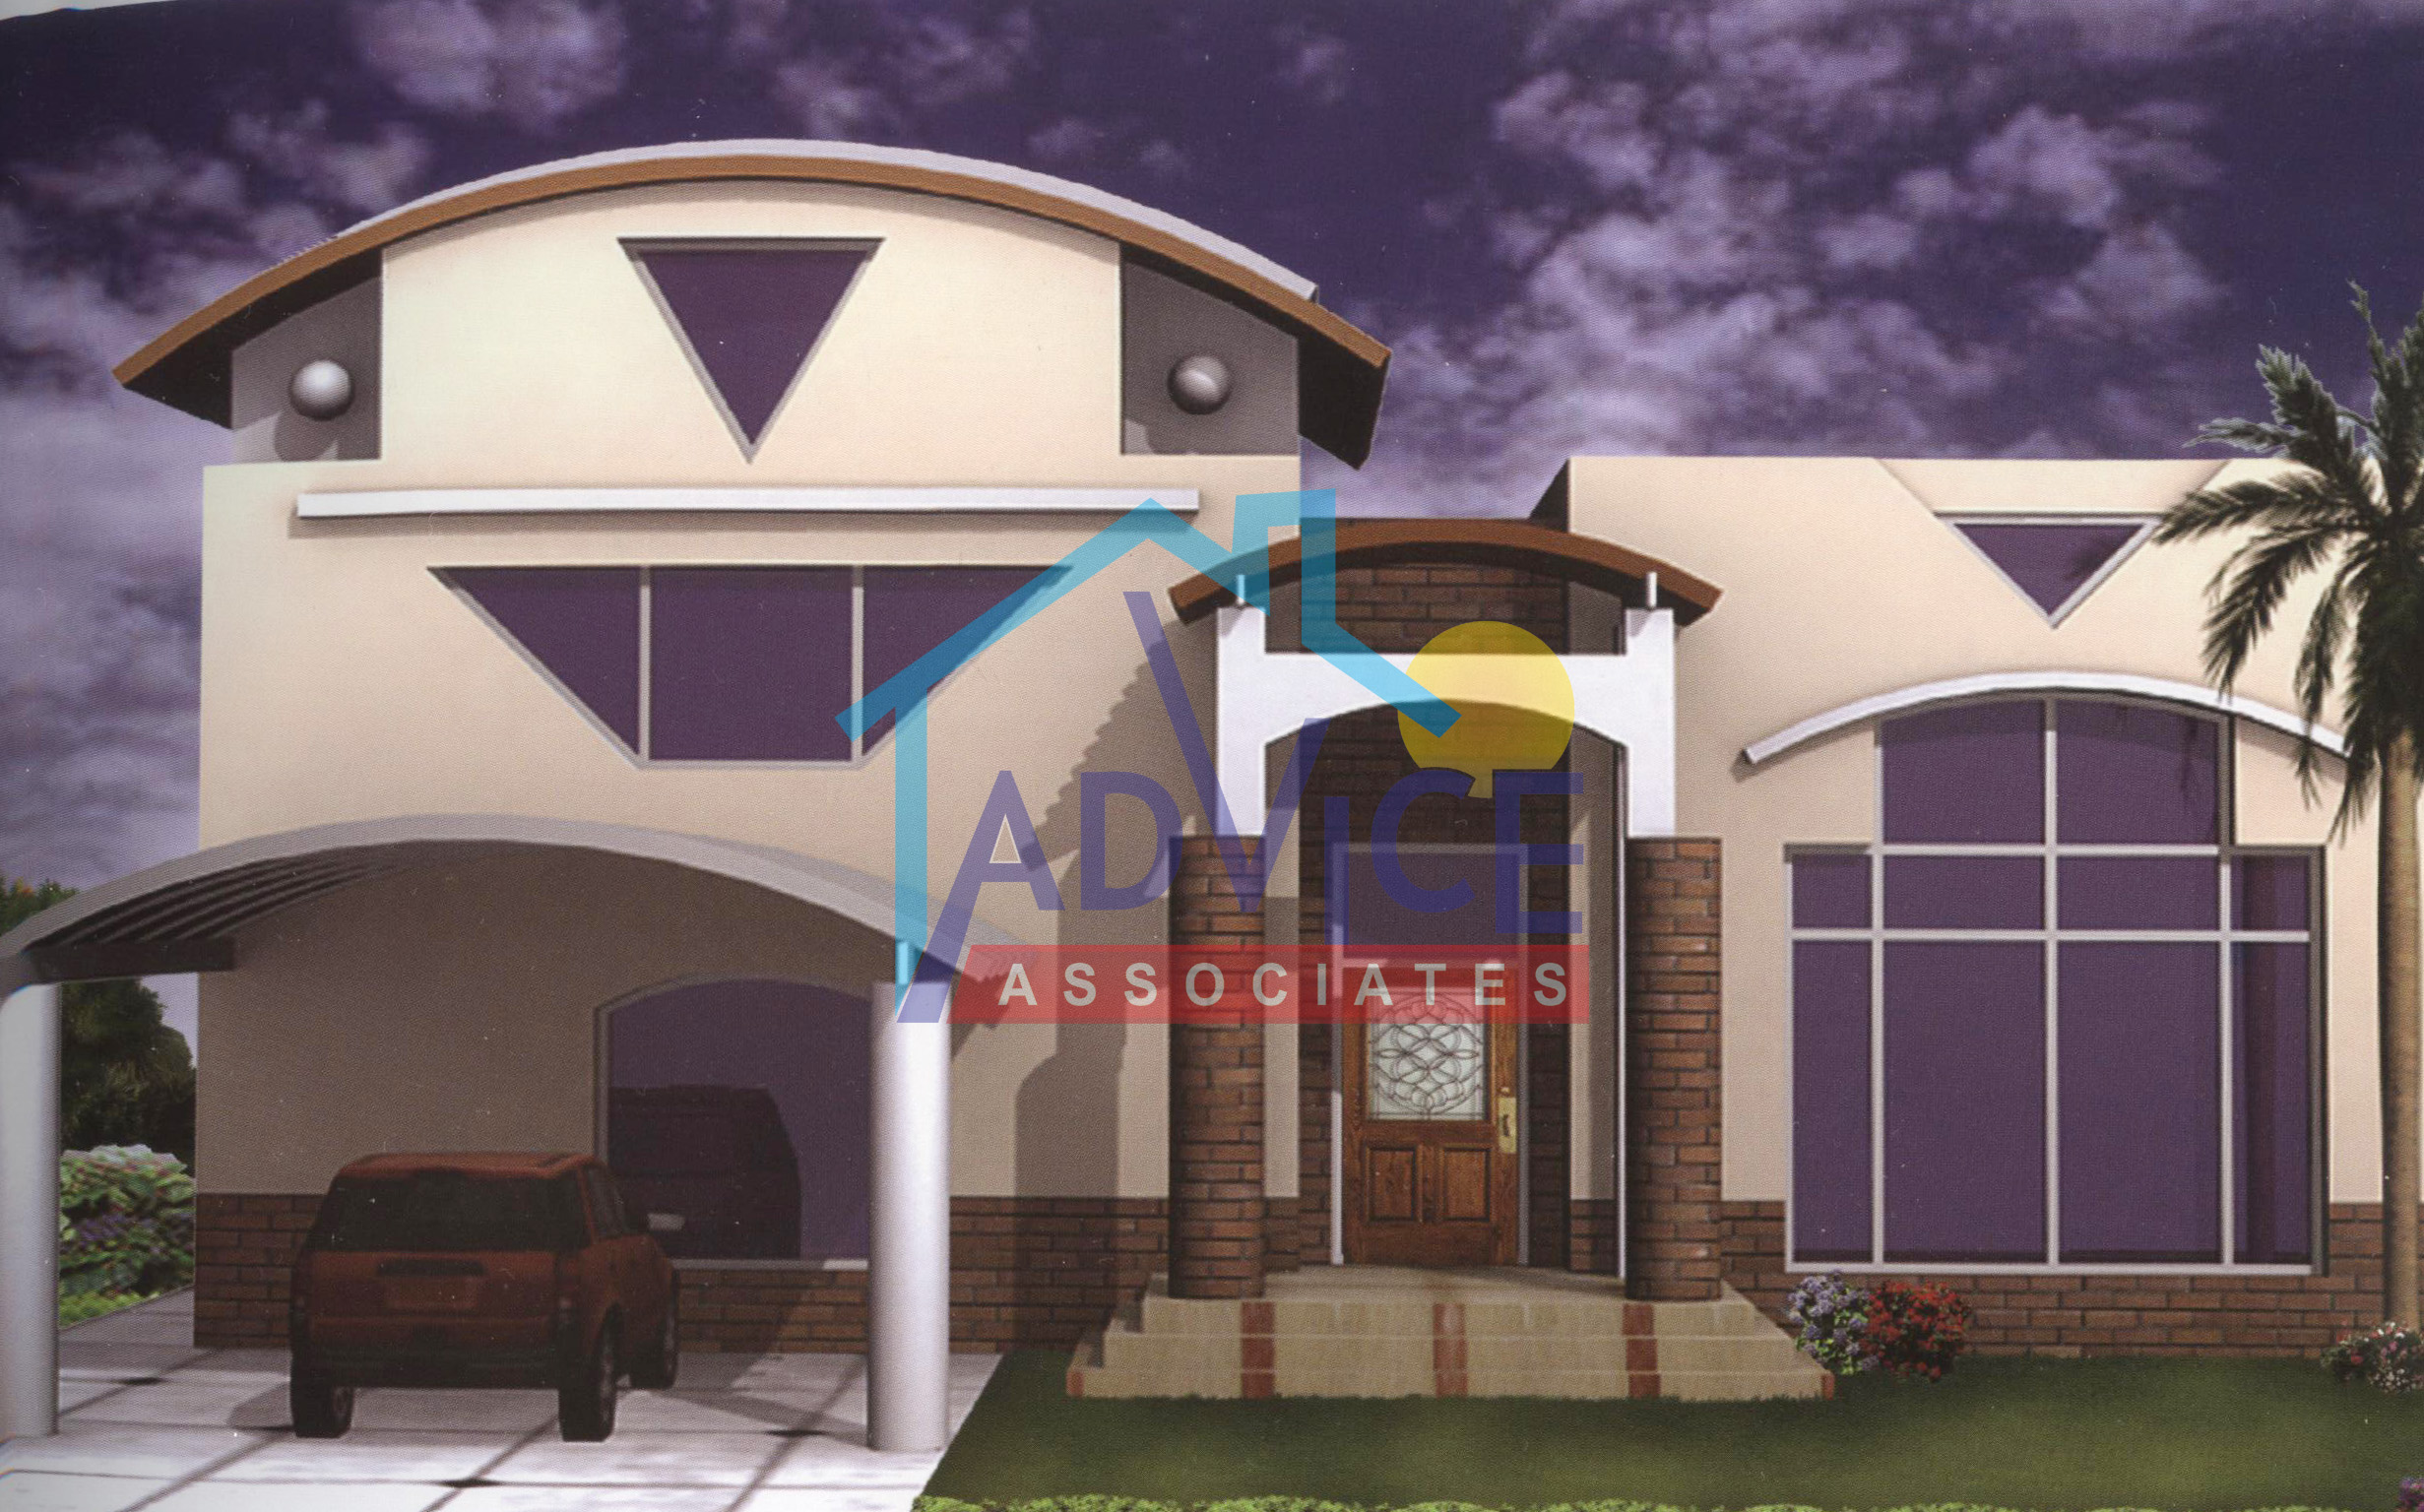 10 Marla House Design